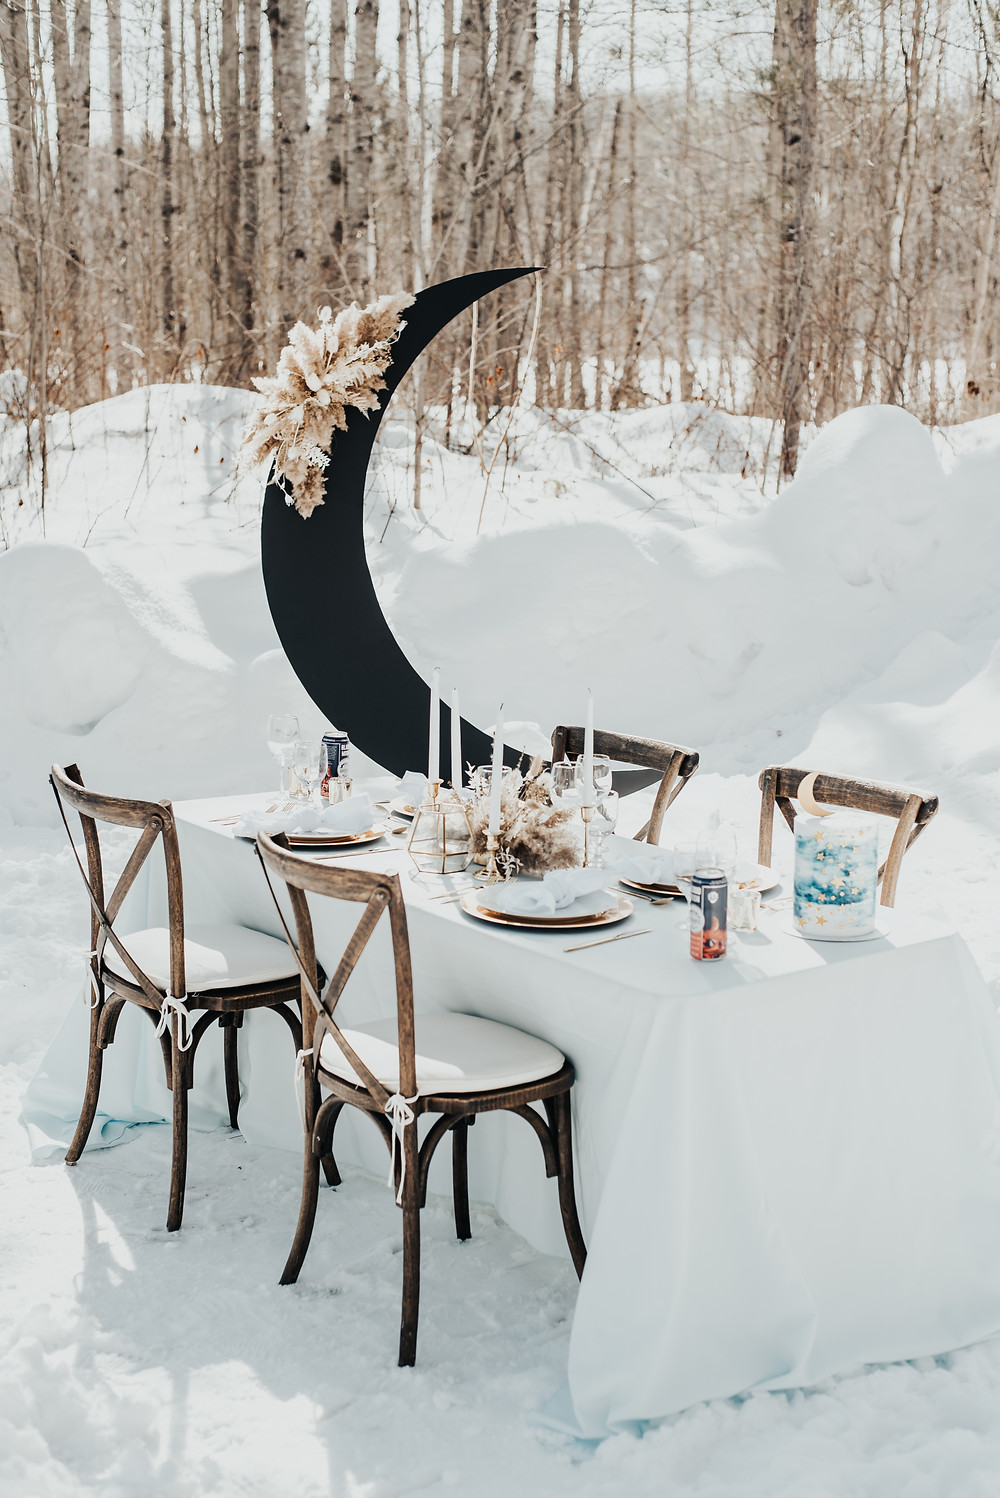 Celestial winter elopement at Barron Canyon Trail, Algonquin Provincial Park, Ontario. Photo by Autumn Liggett Photography.